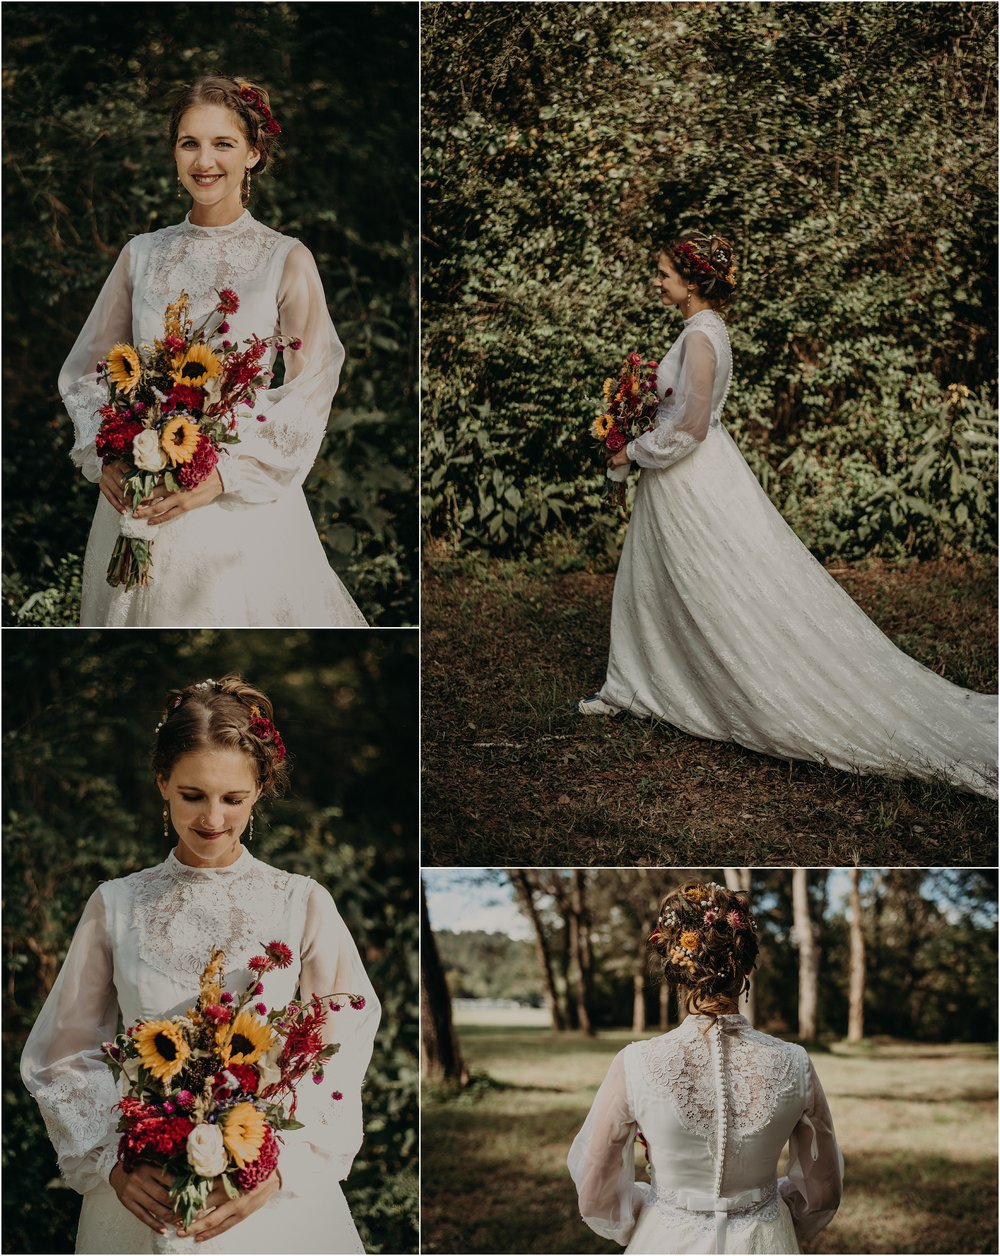 The bride's vintage thrifted wedding gown from the 70's with wildflowers in her hair